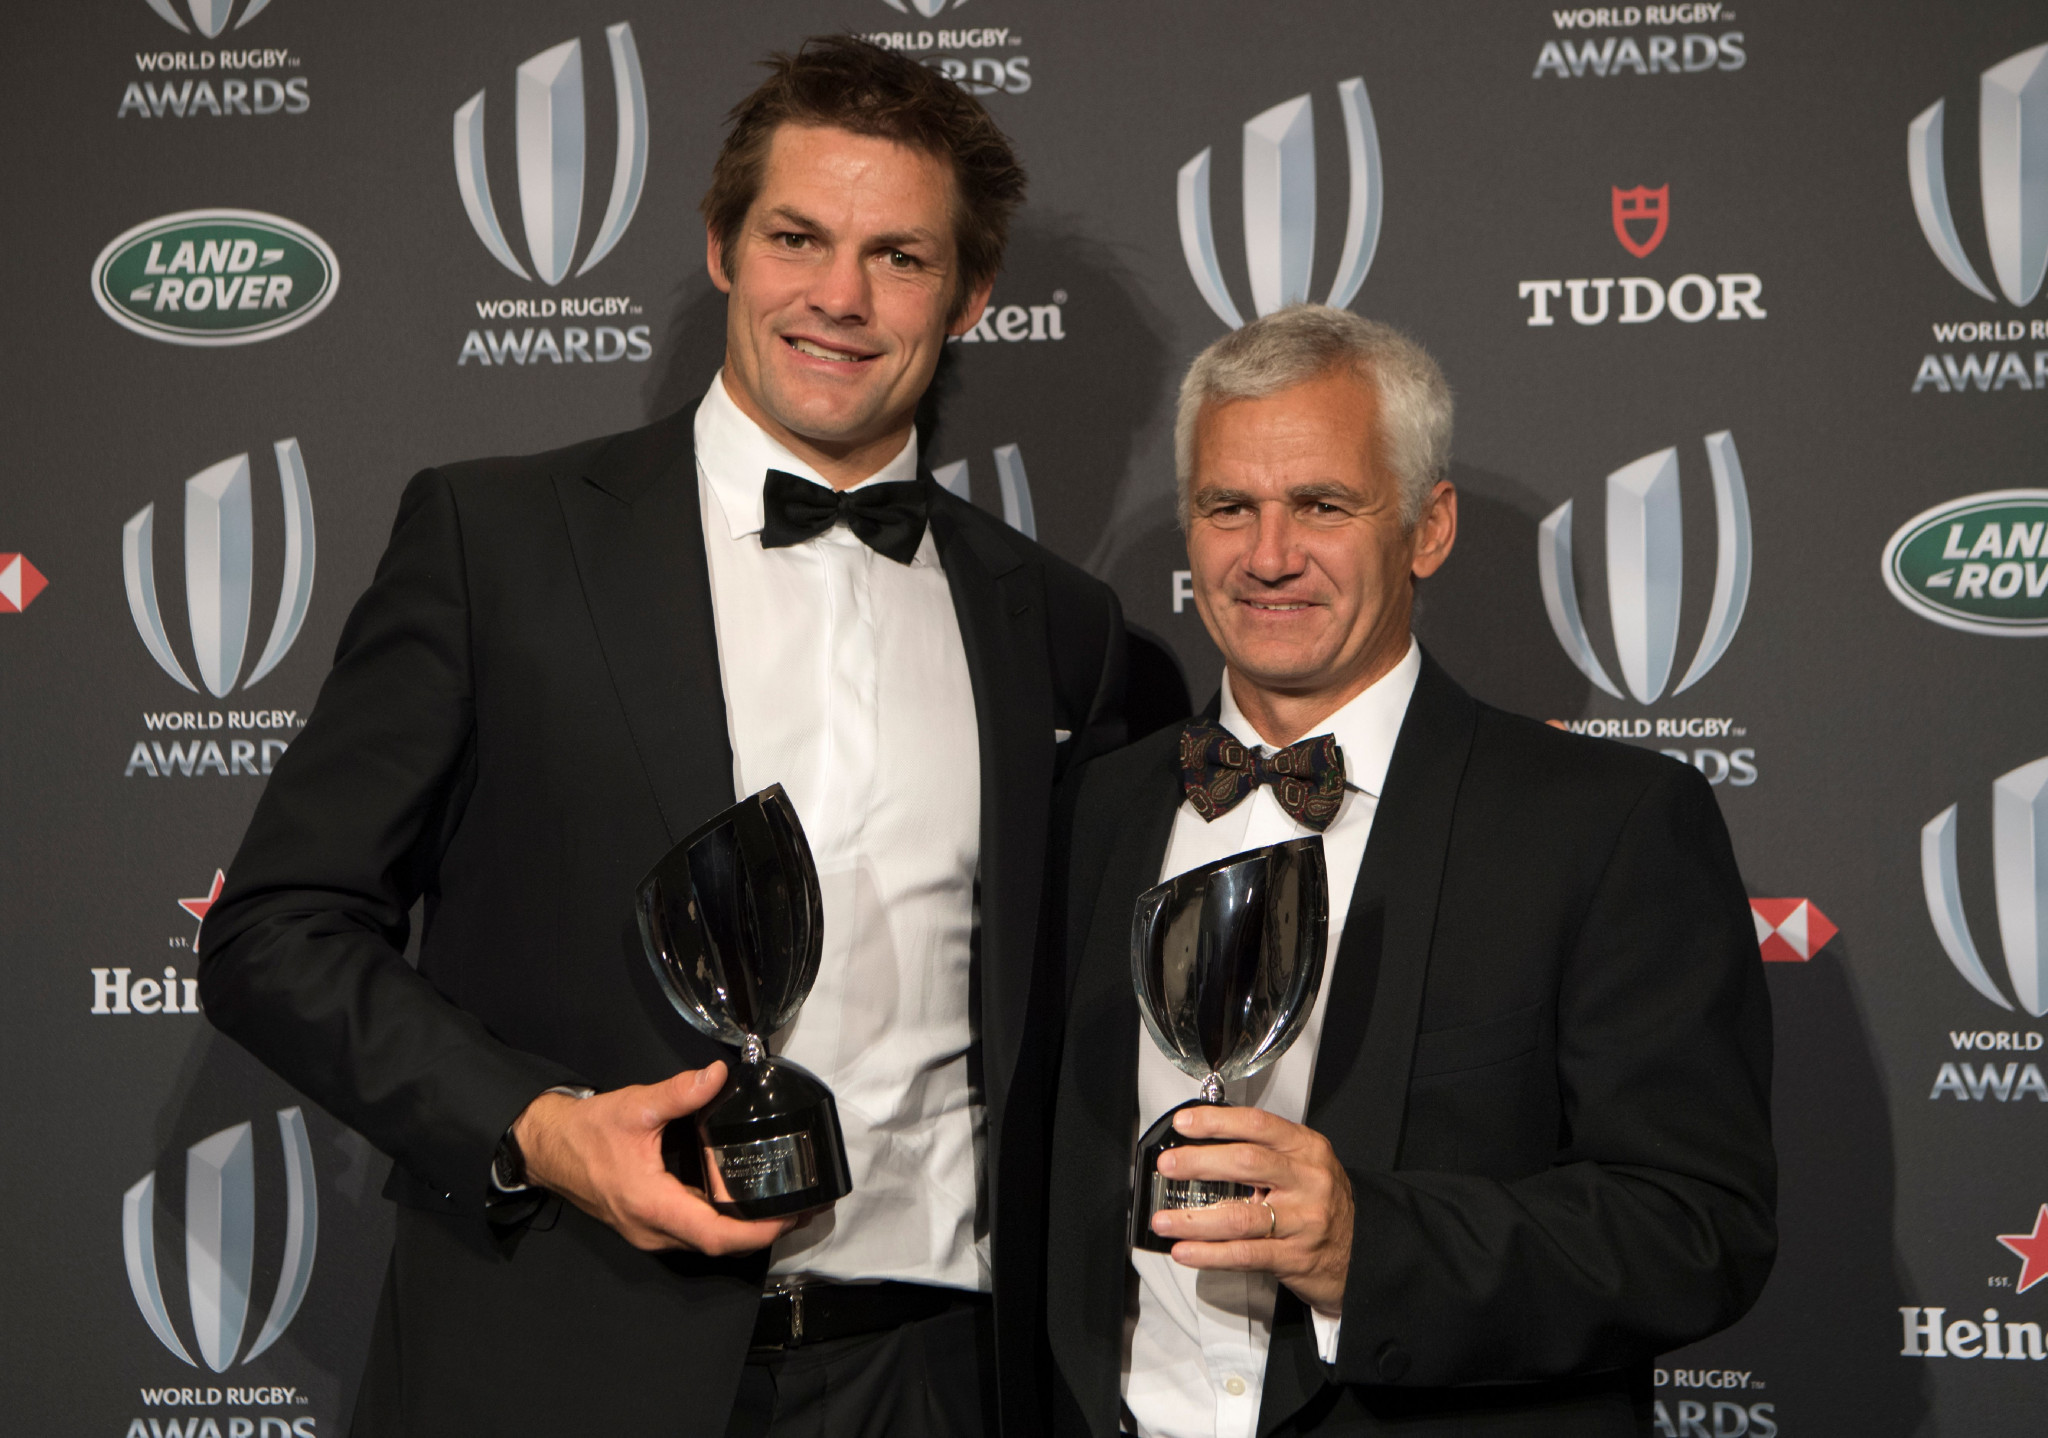 World Rugby has announced a sponsorship deal for its awards in Monaco ©Getty Images